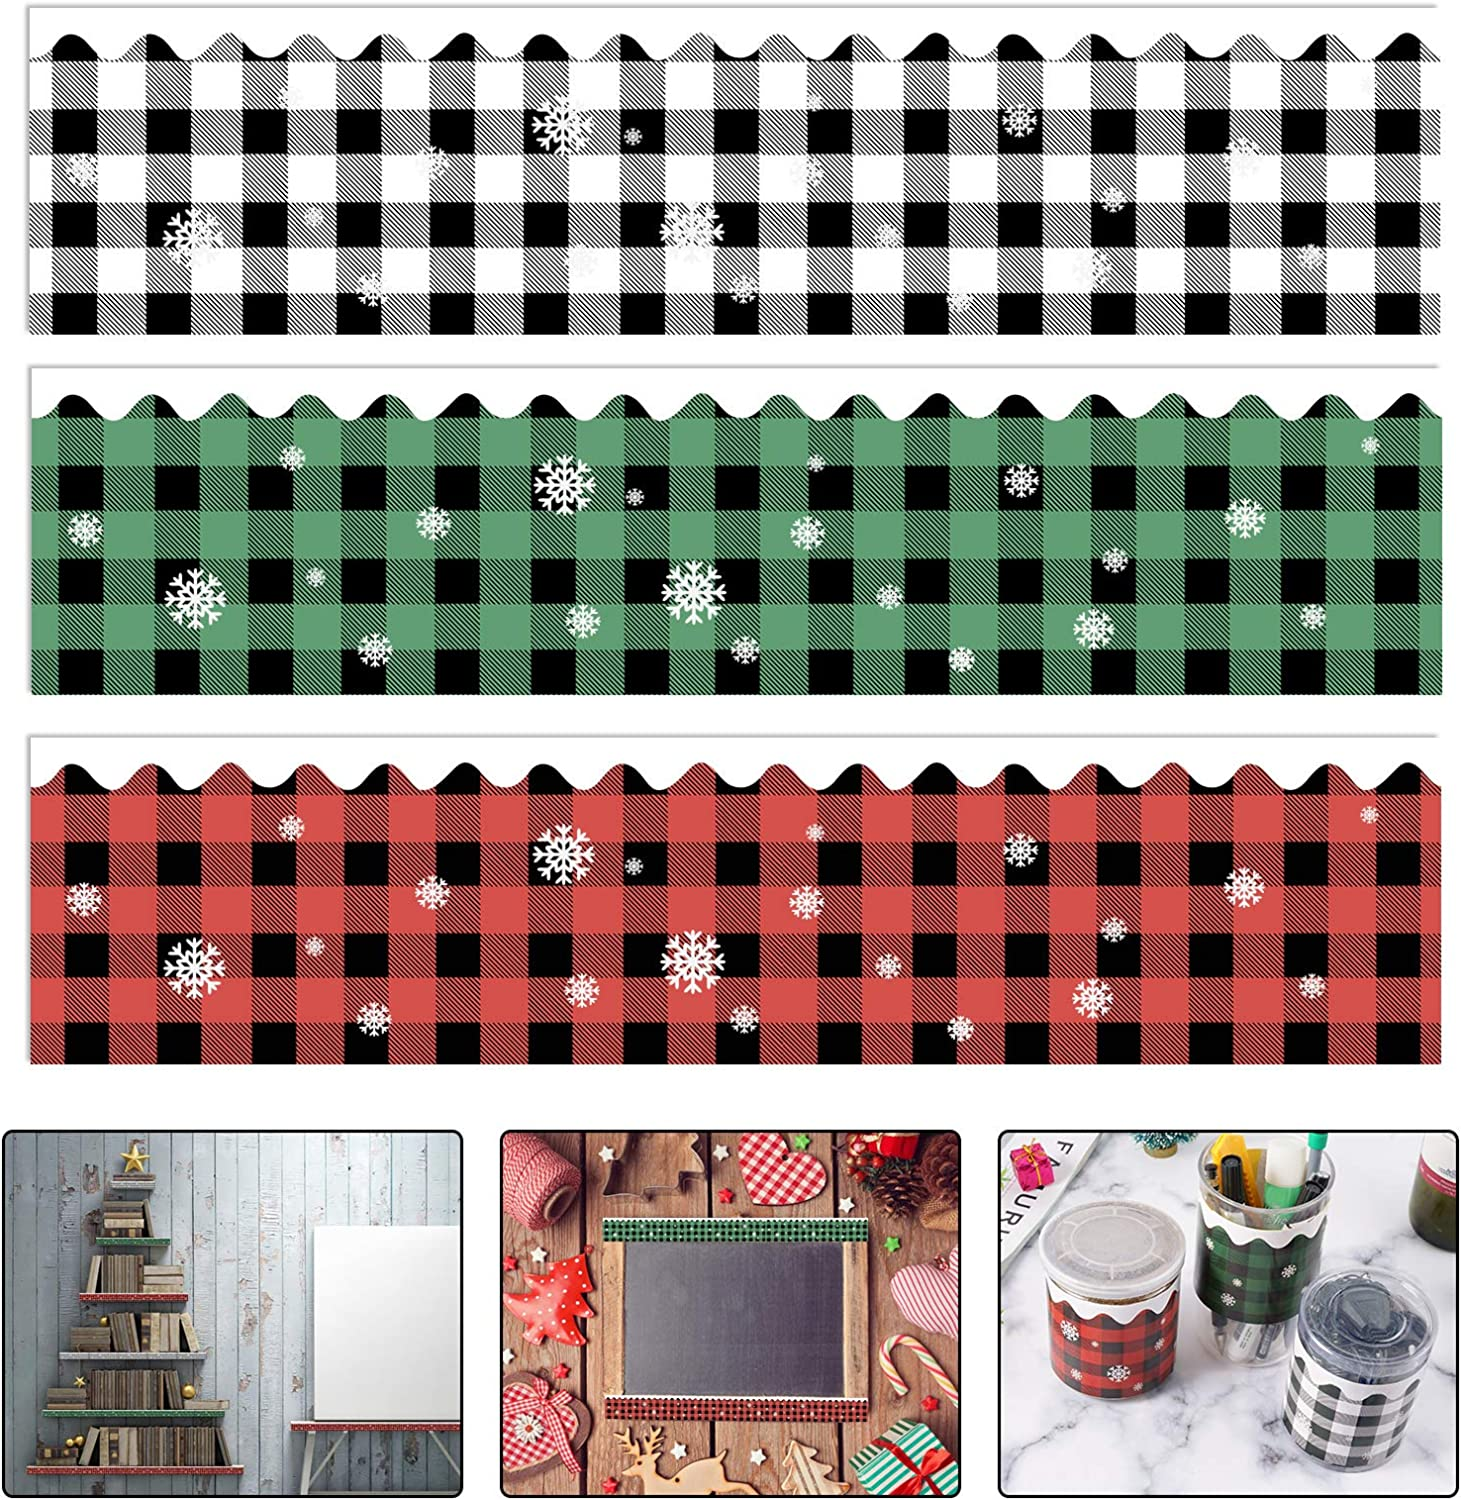 60 Pcs Christmas Bulletin Borders Stickers, 69 Ft Buffalo Plaid Bulletin Board Border for Classroom School, Christmas Thanksgiving Decor for DIY Greeting Cards Letters Gifts